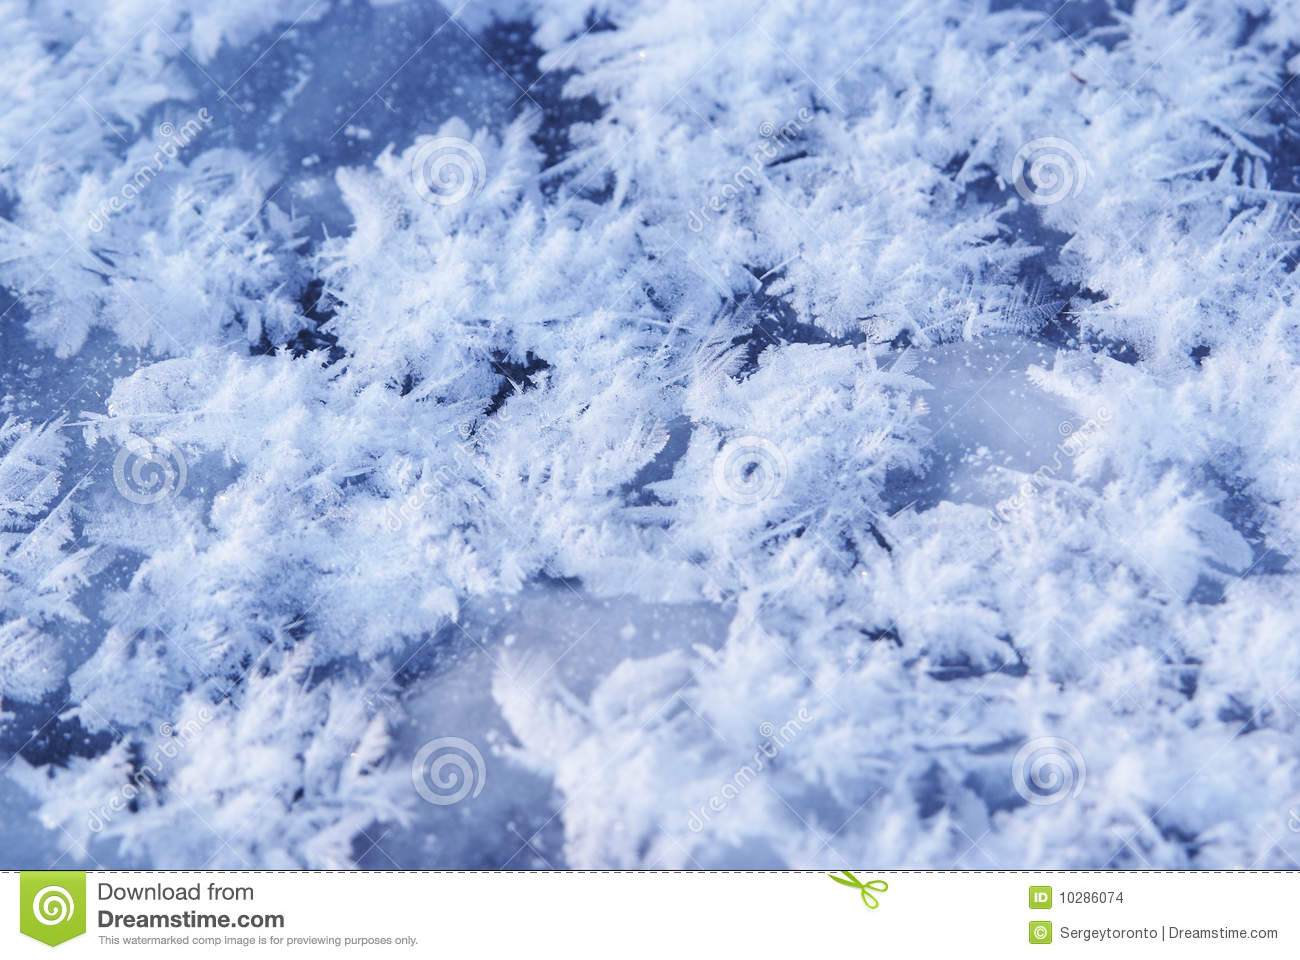 New 3d Animation Wallpaper Ice Flakes On Blue Frozen Background Stock Images Image